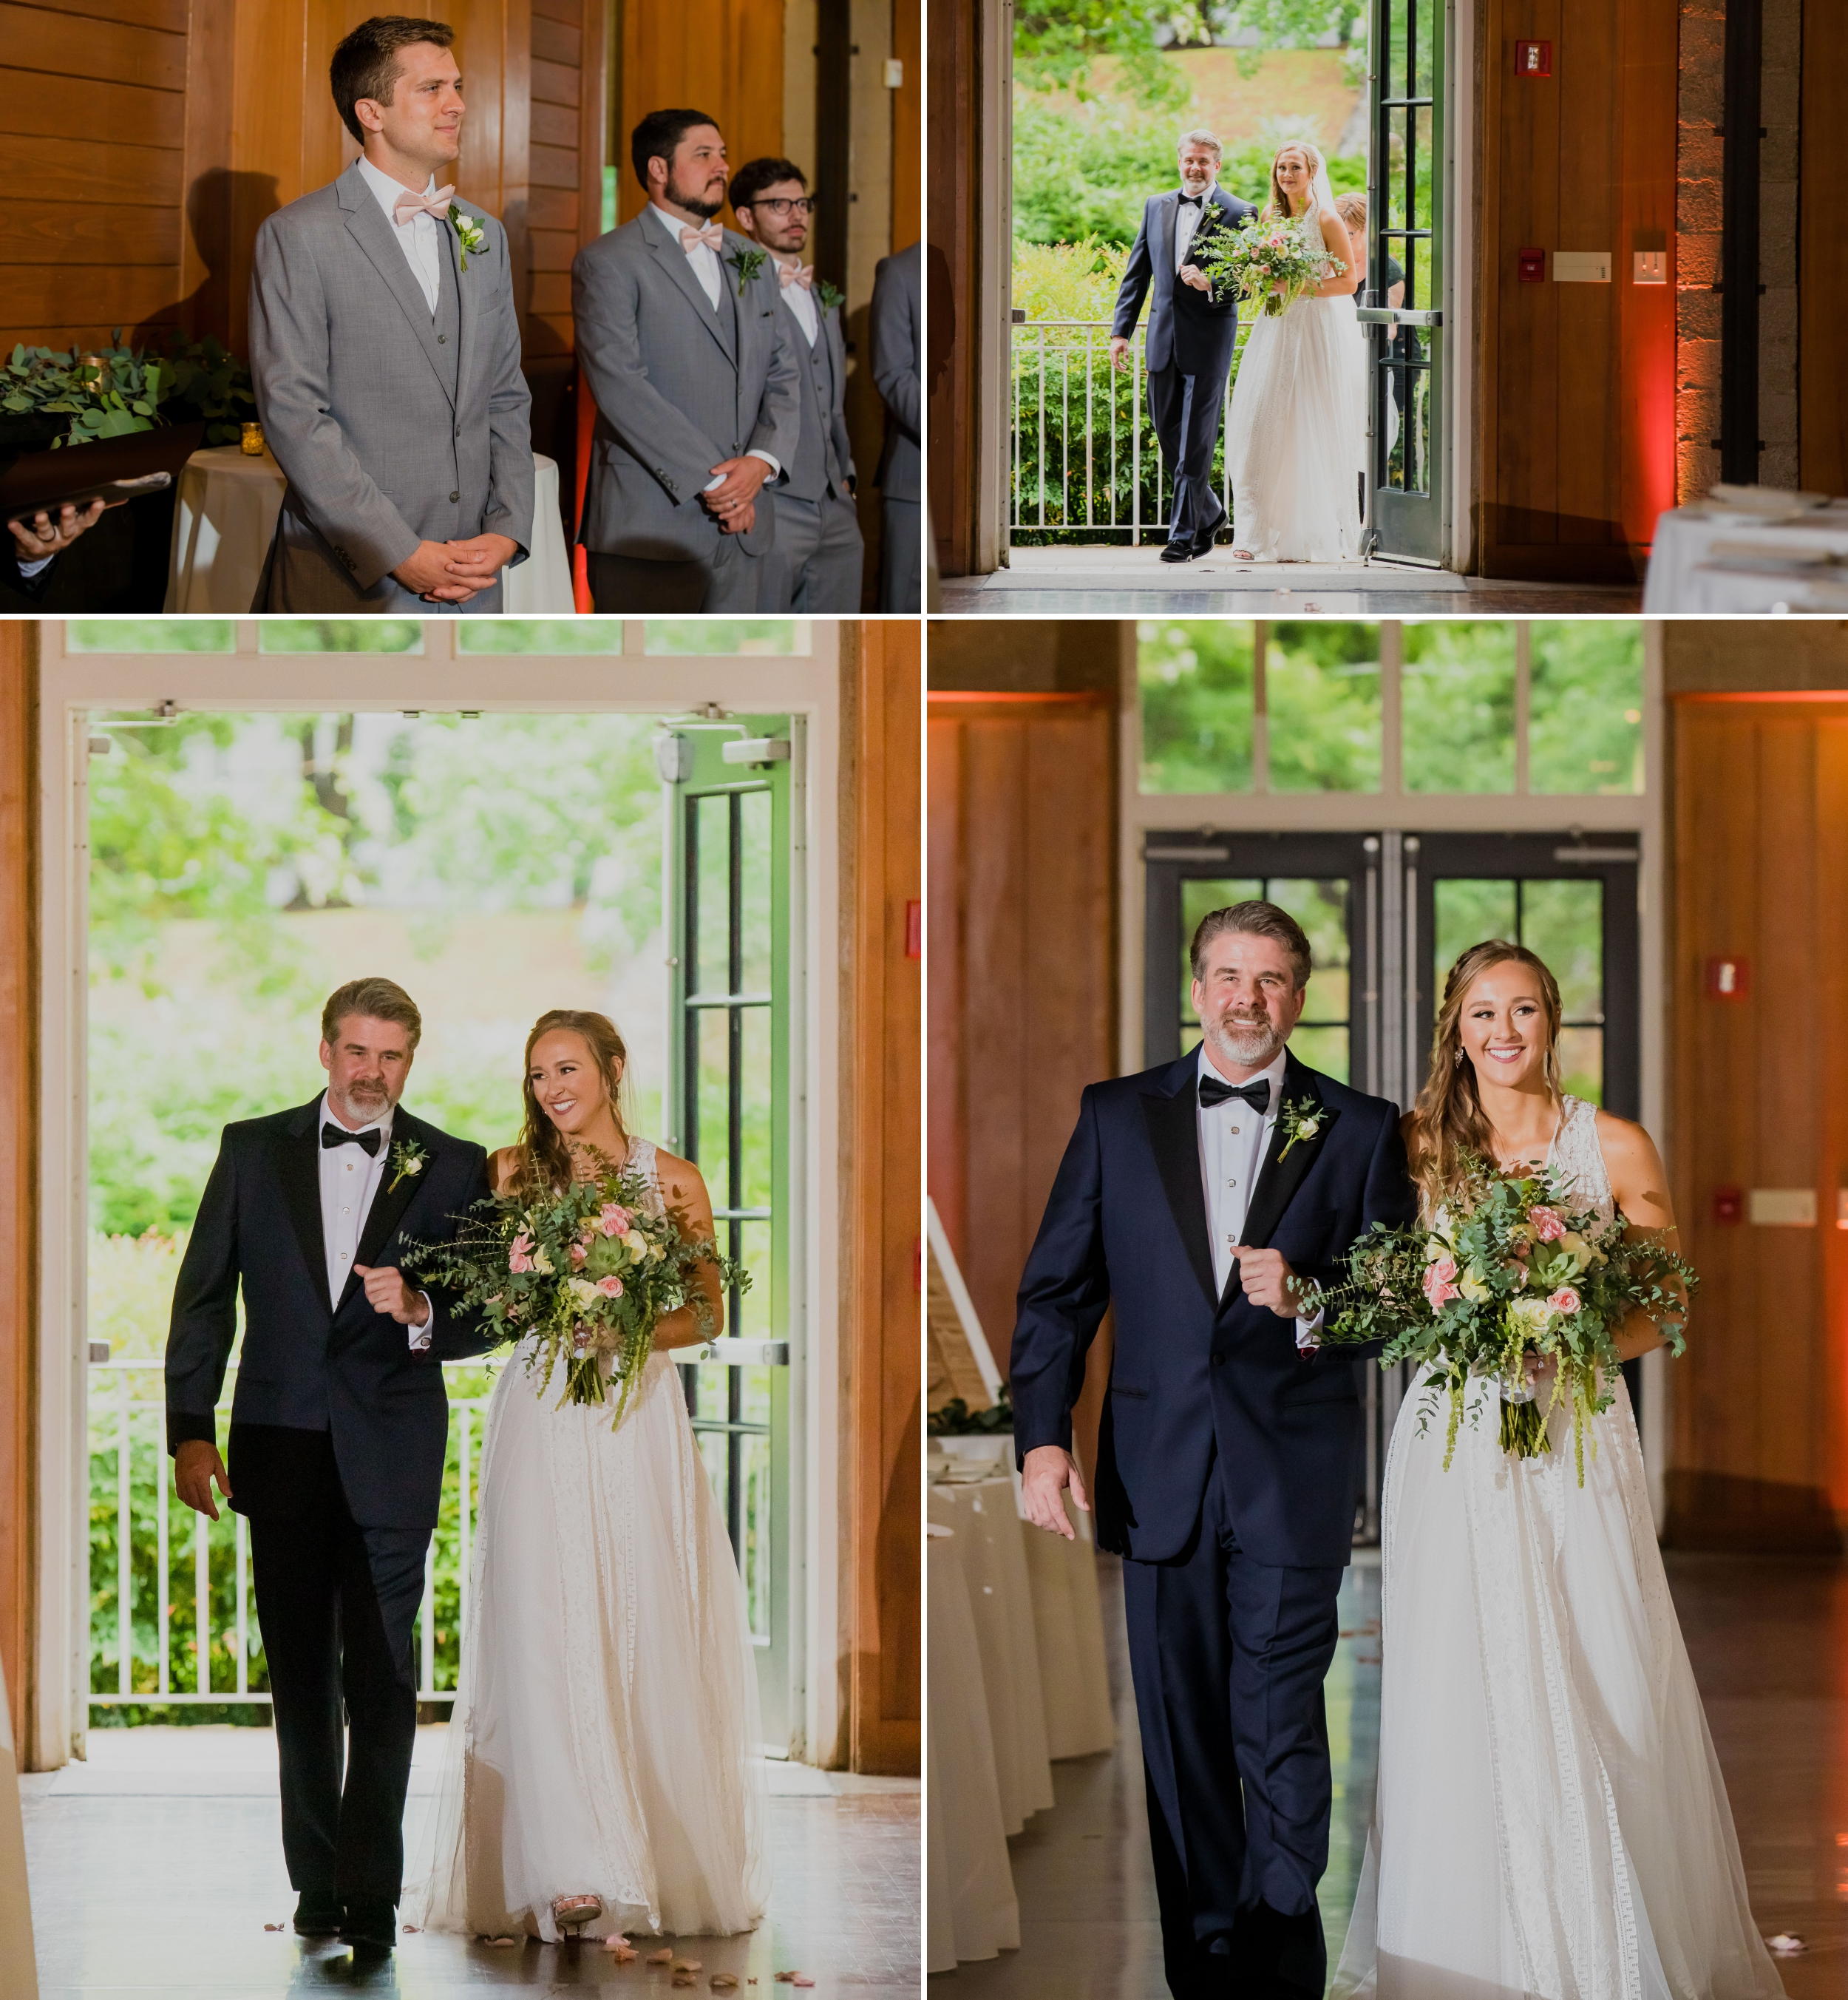 Wedding Piedmont Park - Magnolia Hall - Santy Martinez Photography 23.jpg